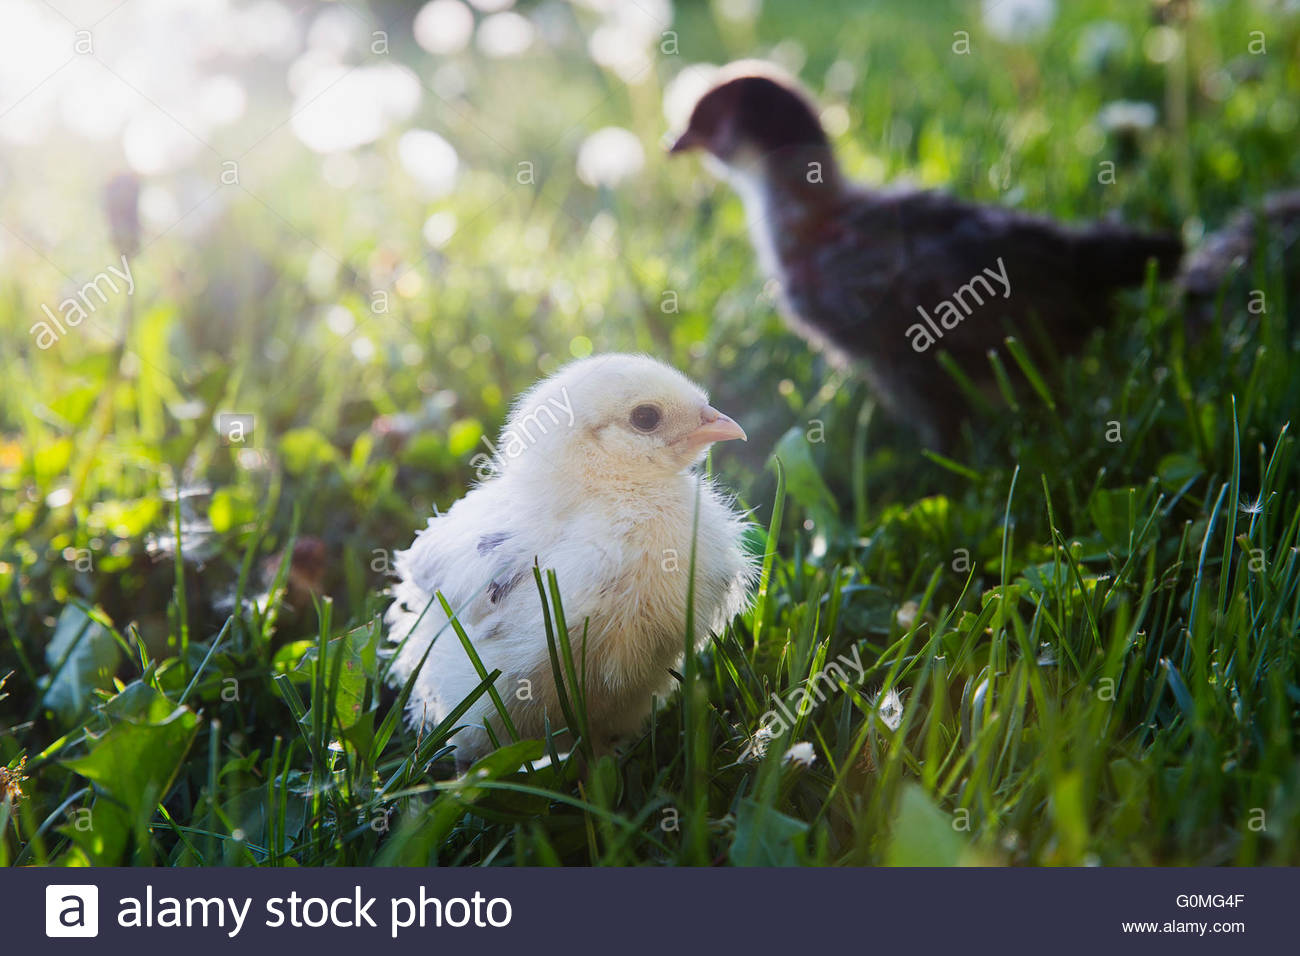 Fuzzy yellow chick in sunny grass - Stock Image